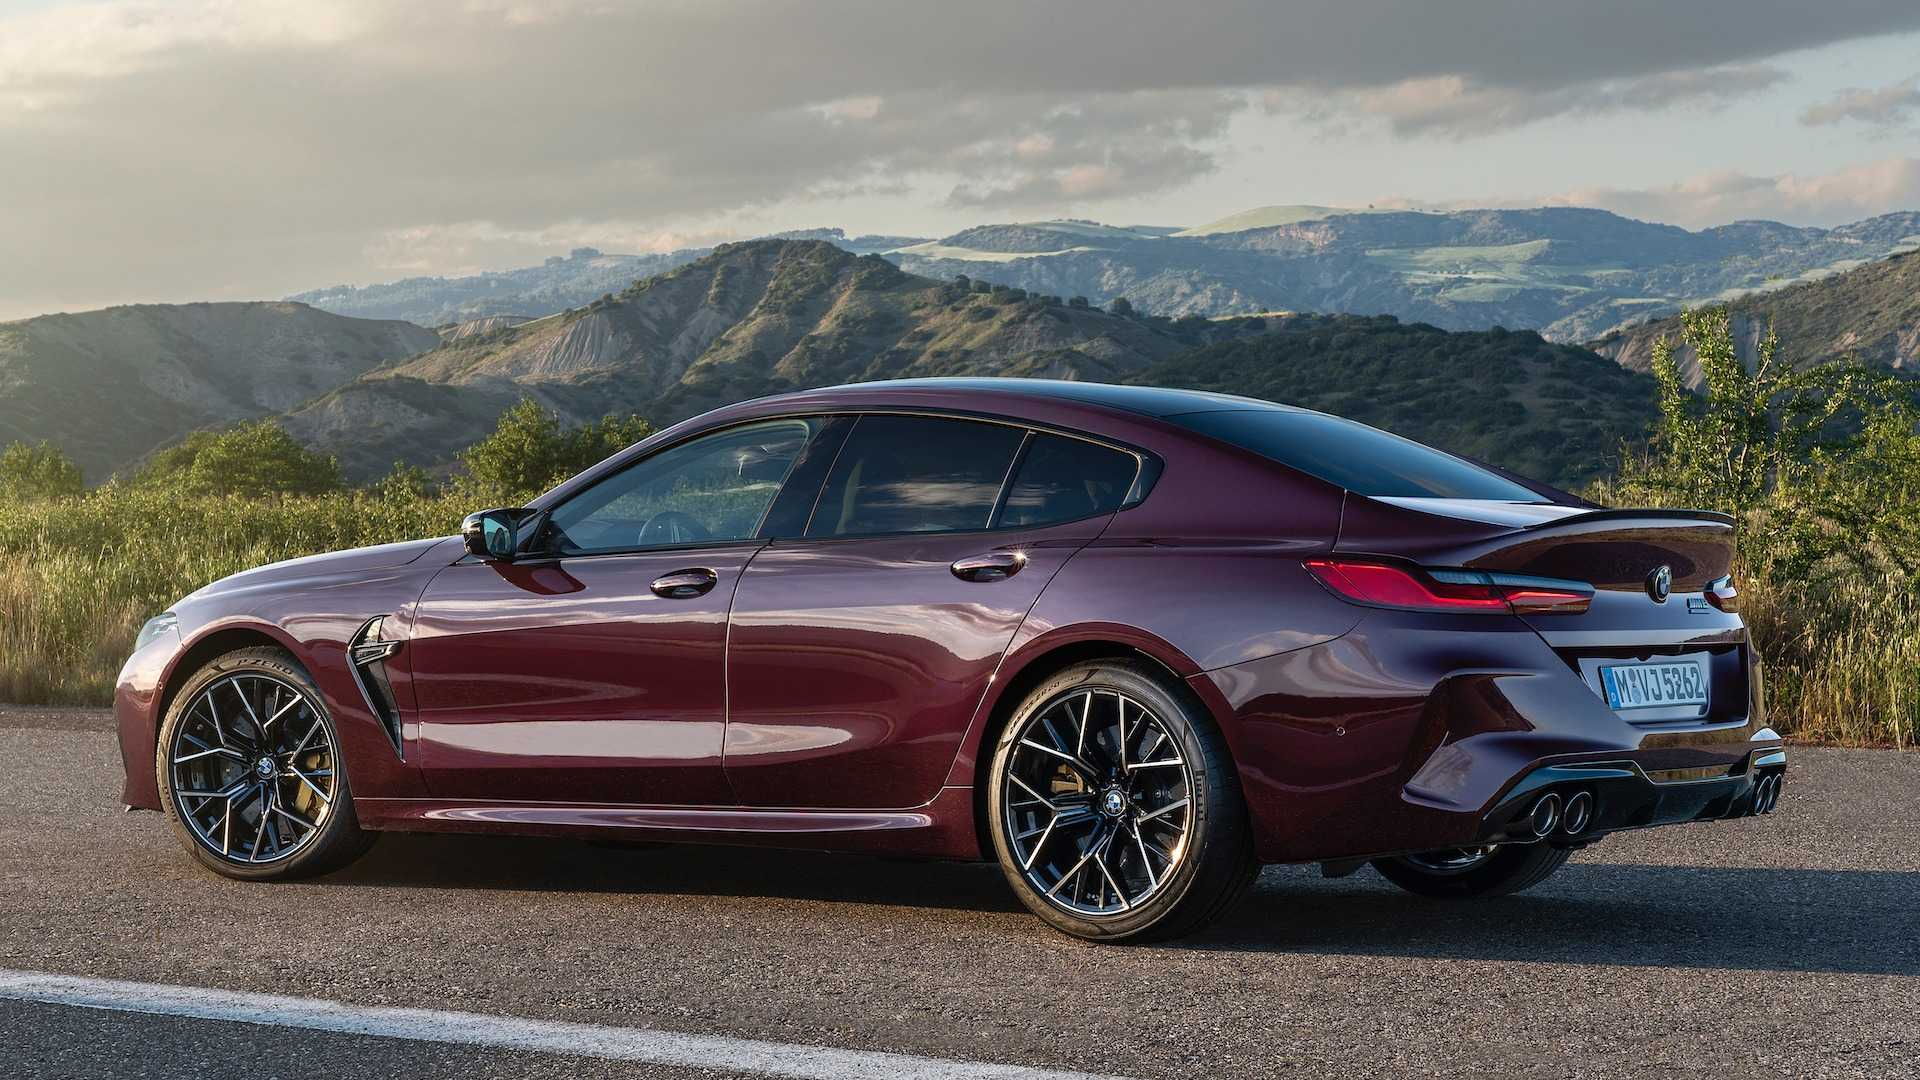 BMW M8 Gran Coupe: A Fire-Breathing Four-Door With Up To 617 HP